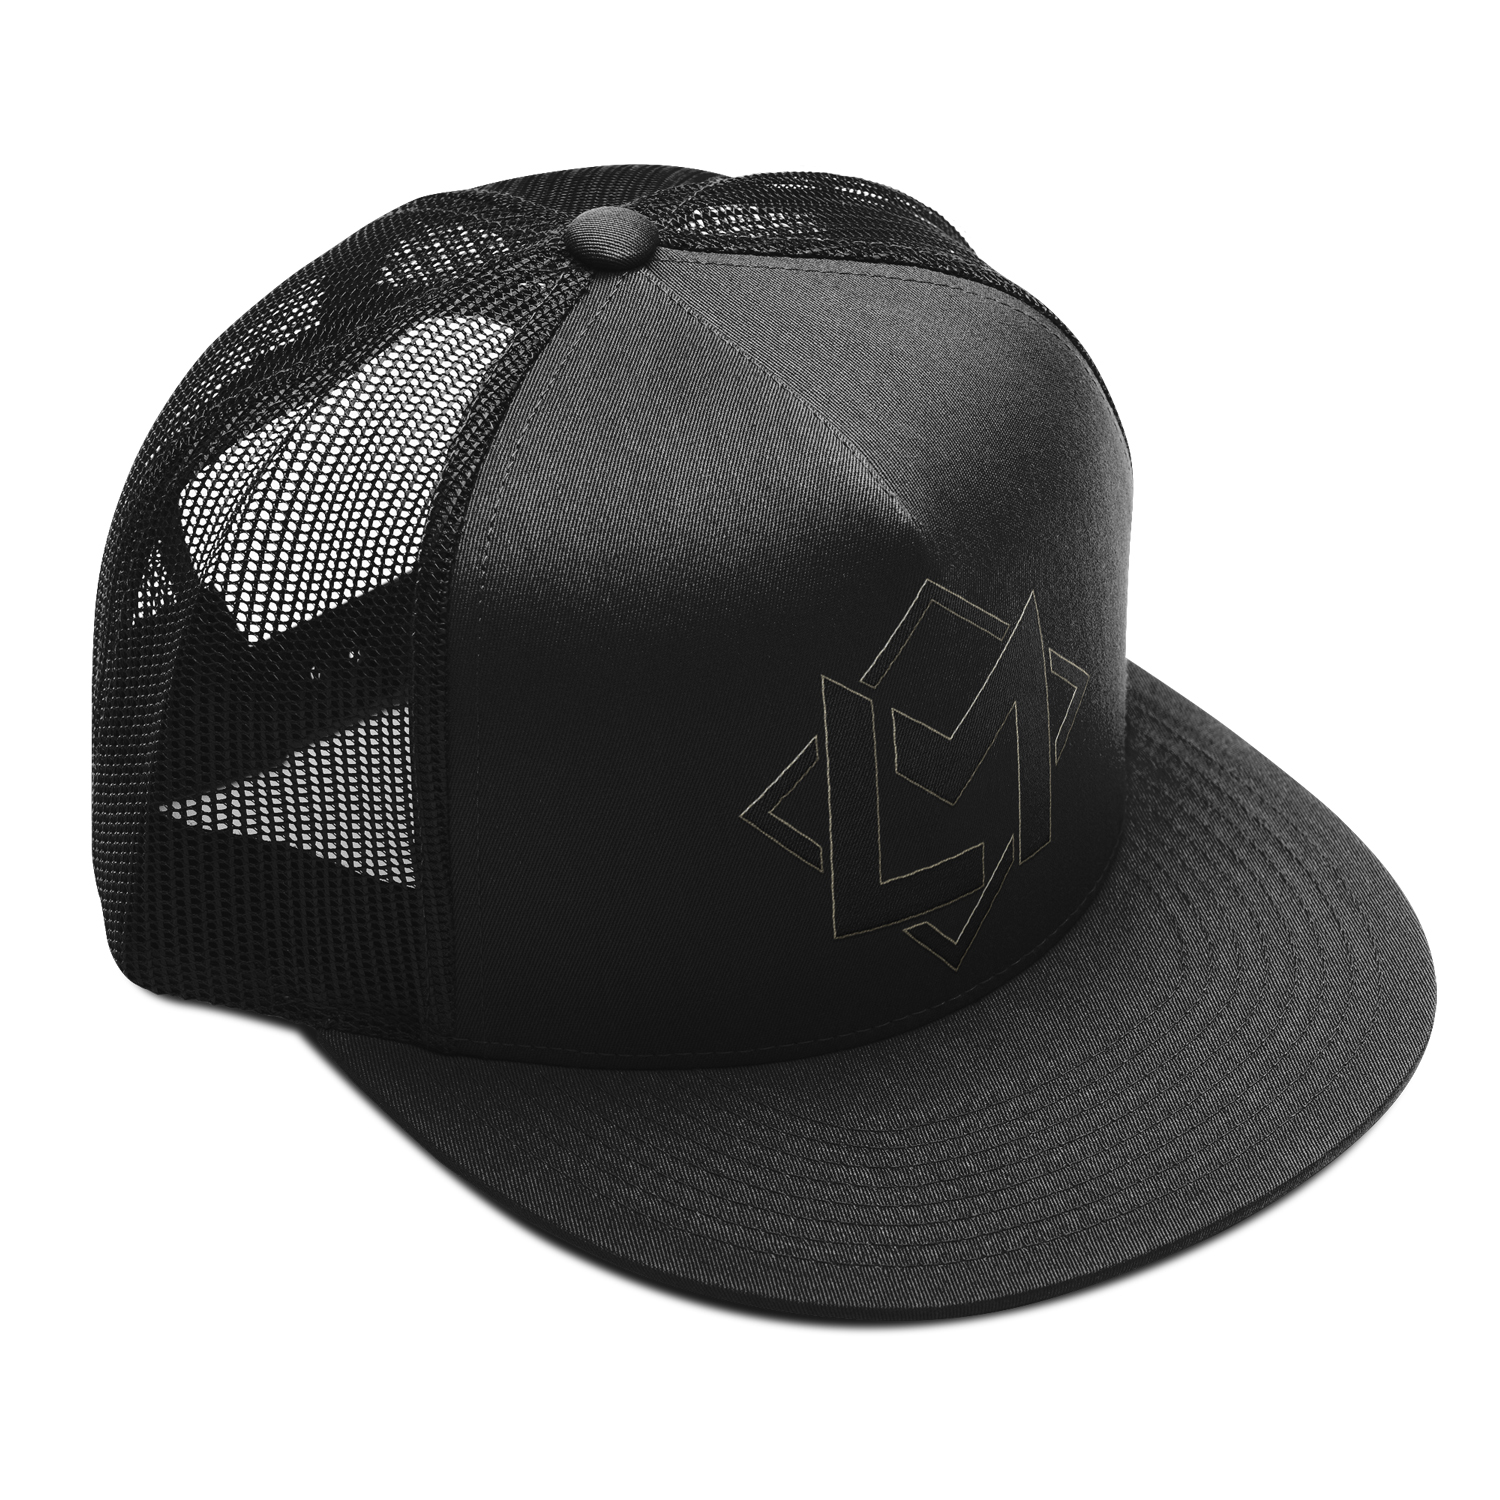 LM WY NEW TRUCKER 2